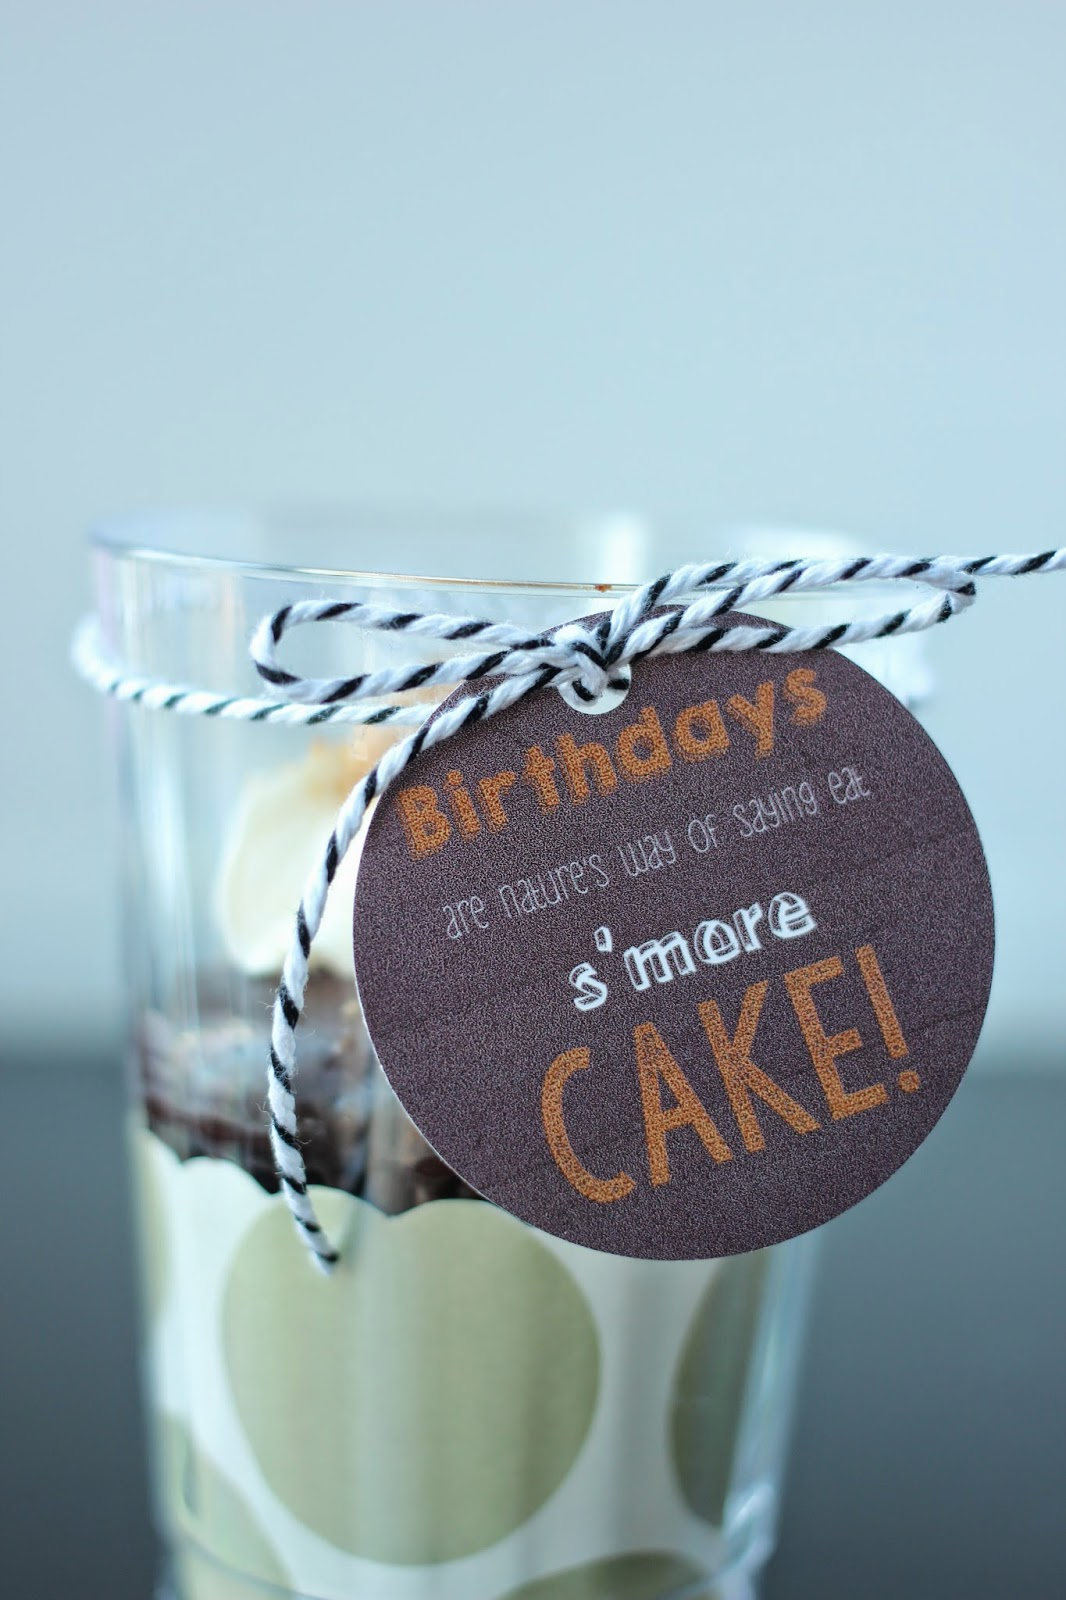 Free eat s'more cake printable gift tag